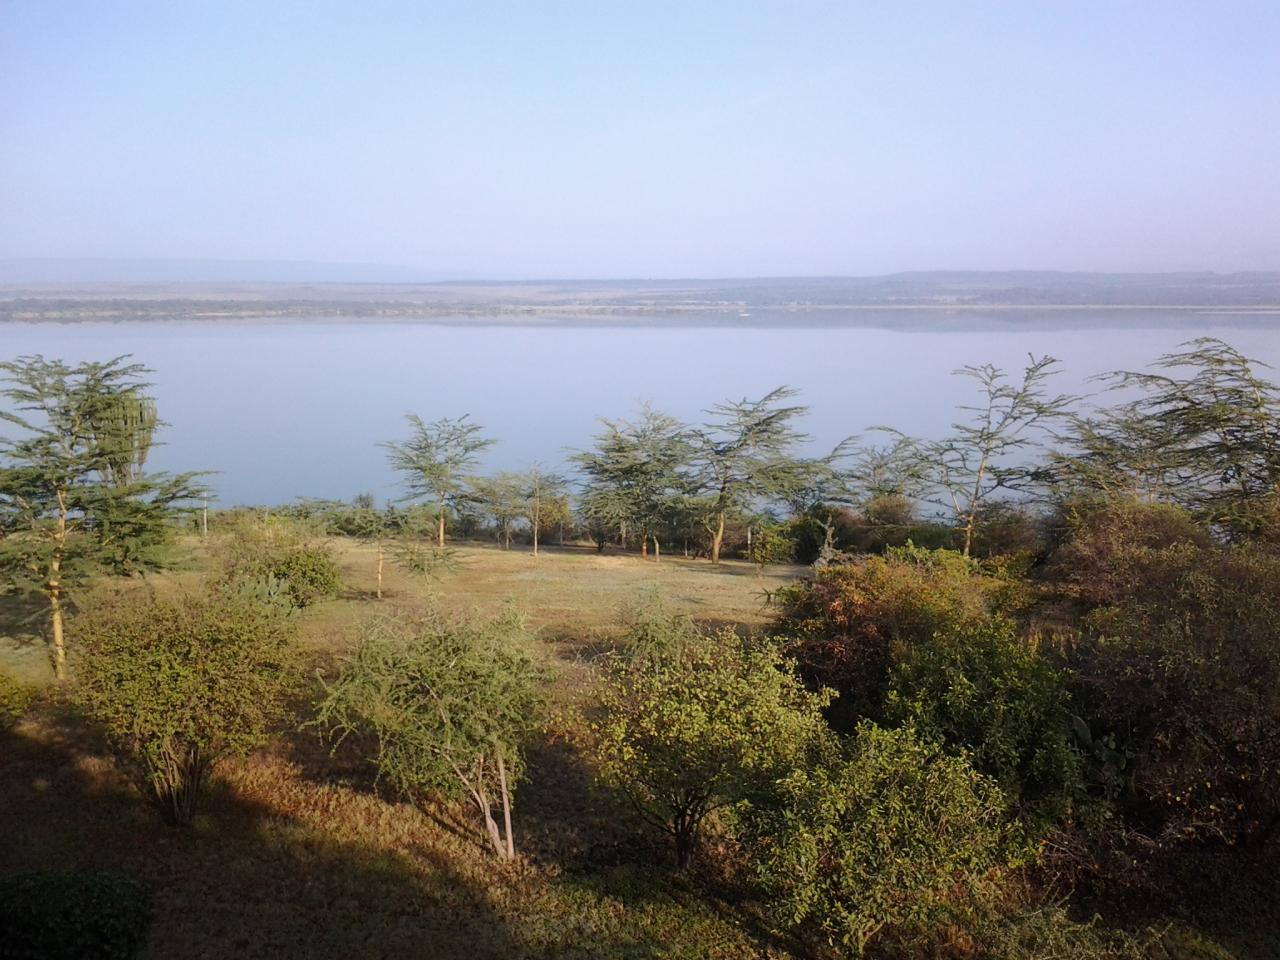 Lake Elementaita Views -Photo by YHA Kenya Travel